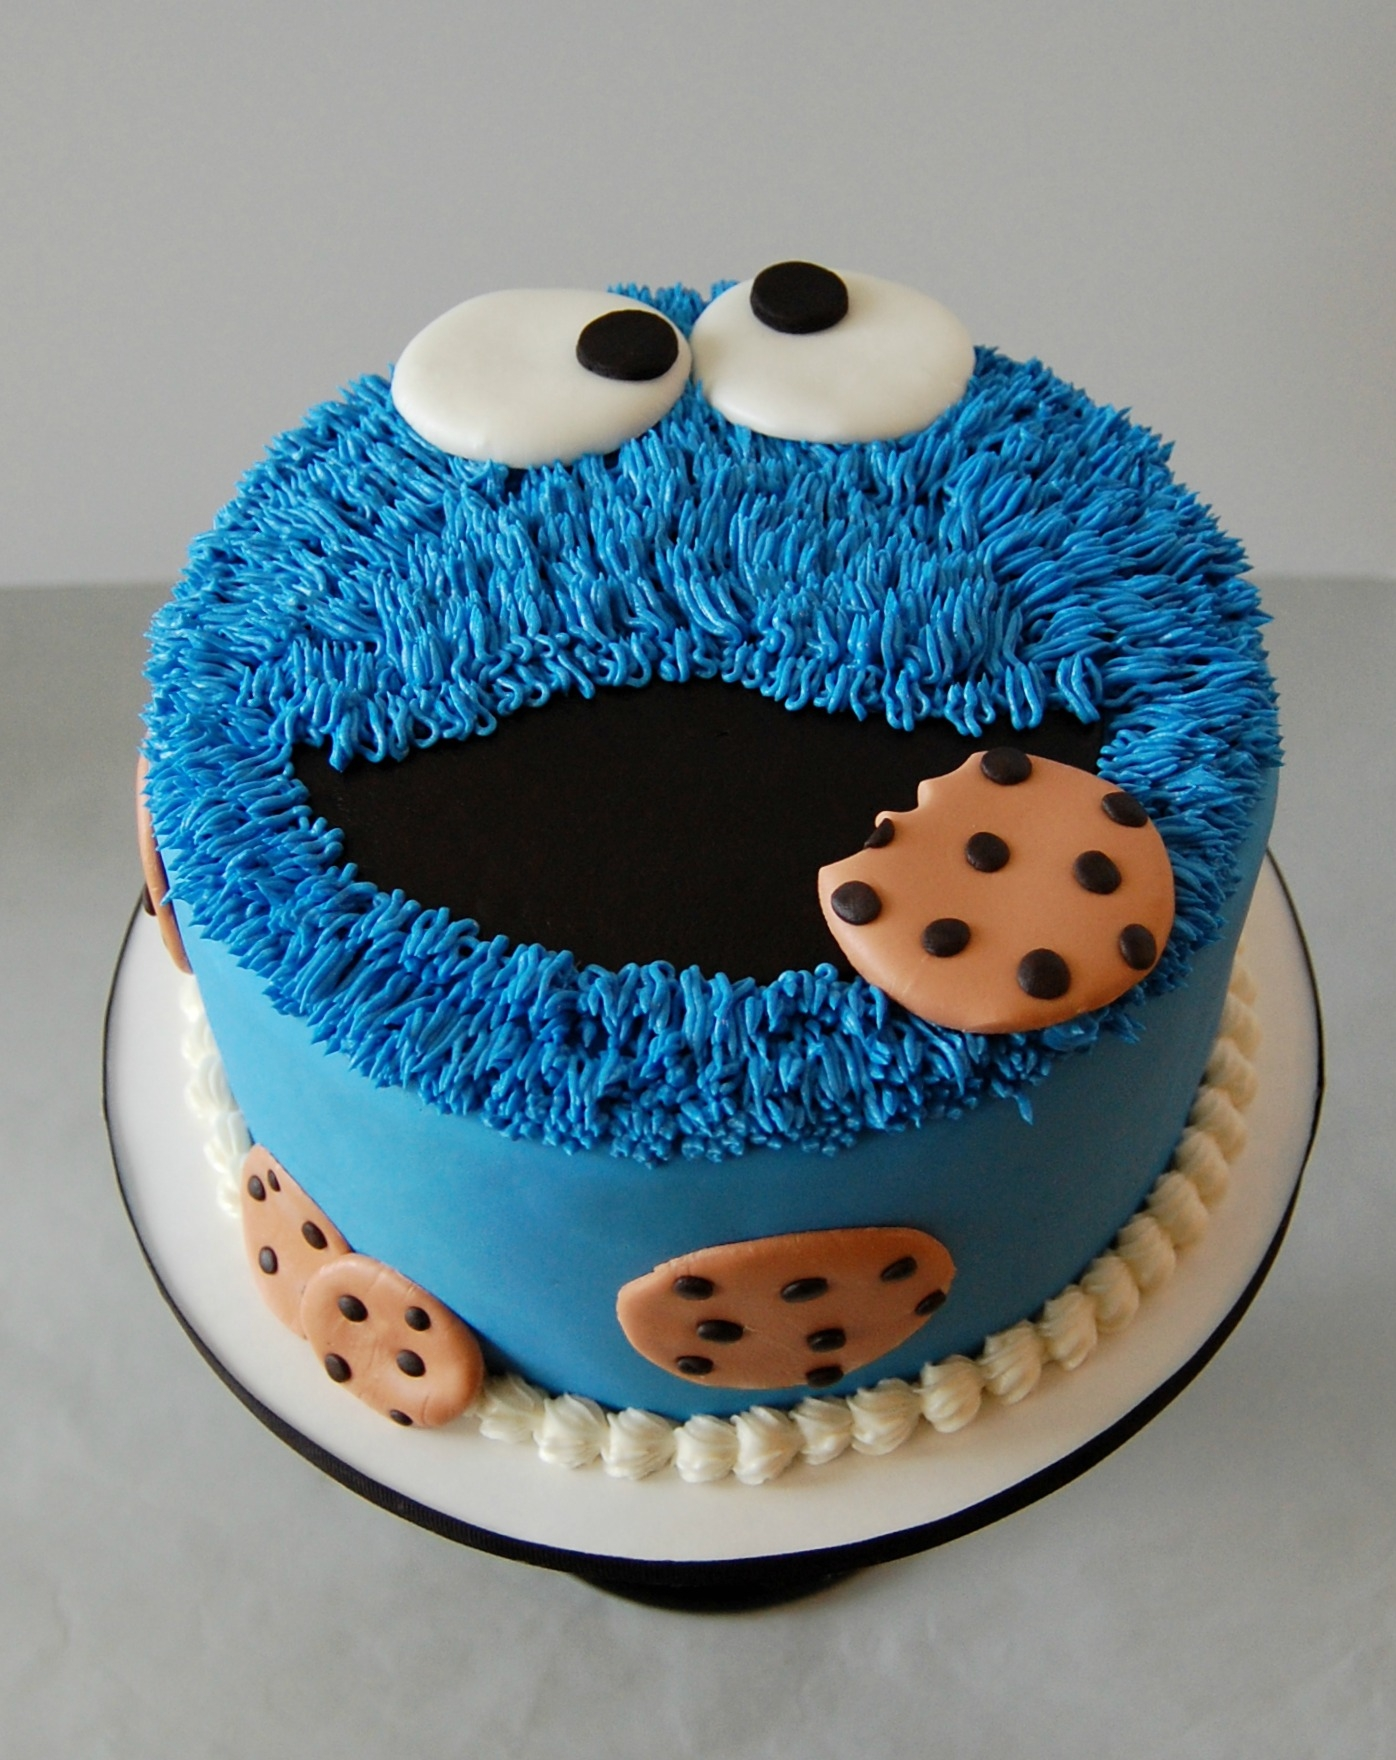 Cookie Monster Cake 1 tier 8 inch Cookie Monster cake